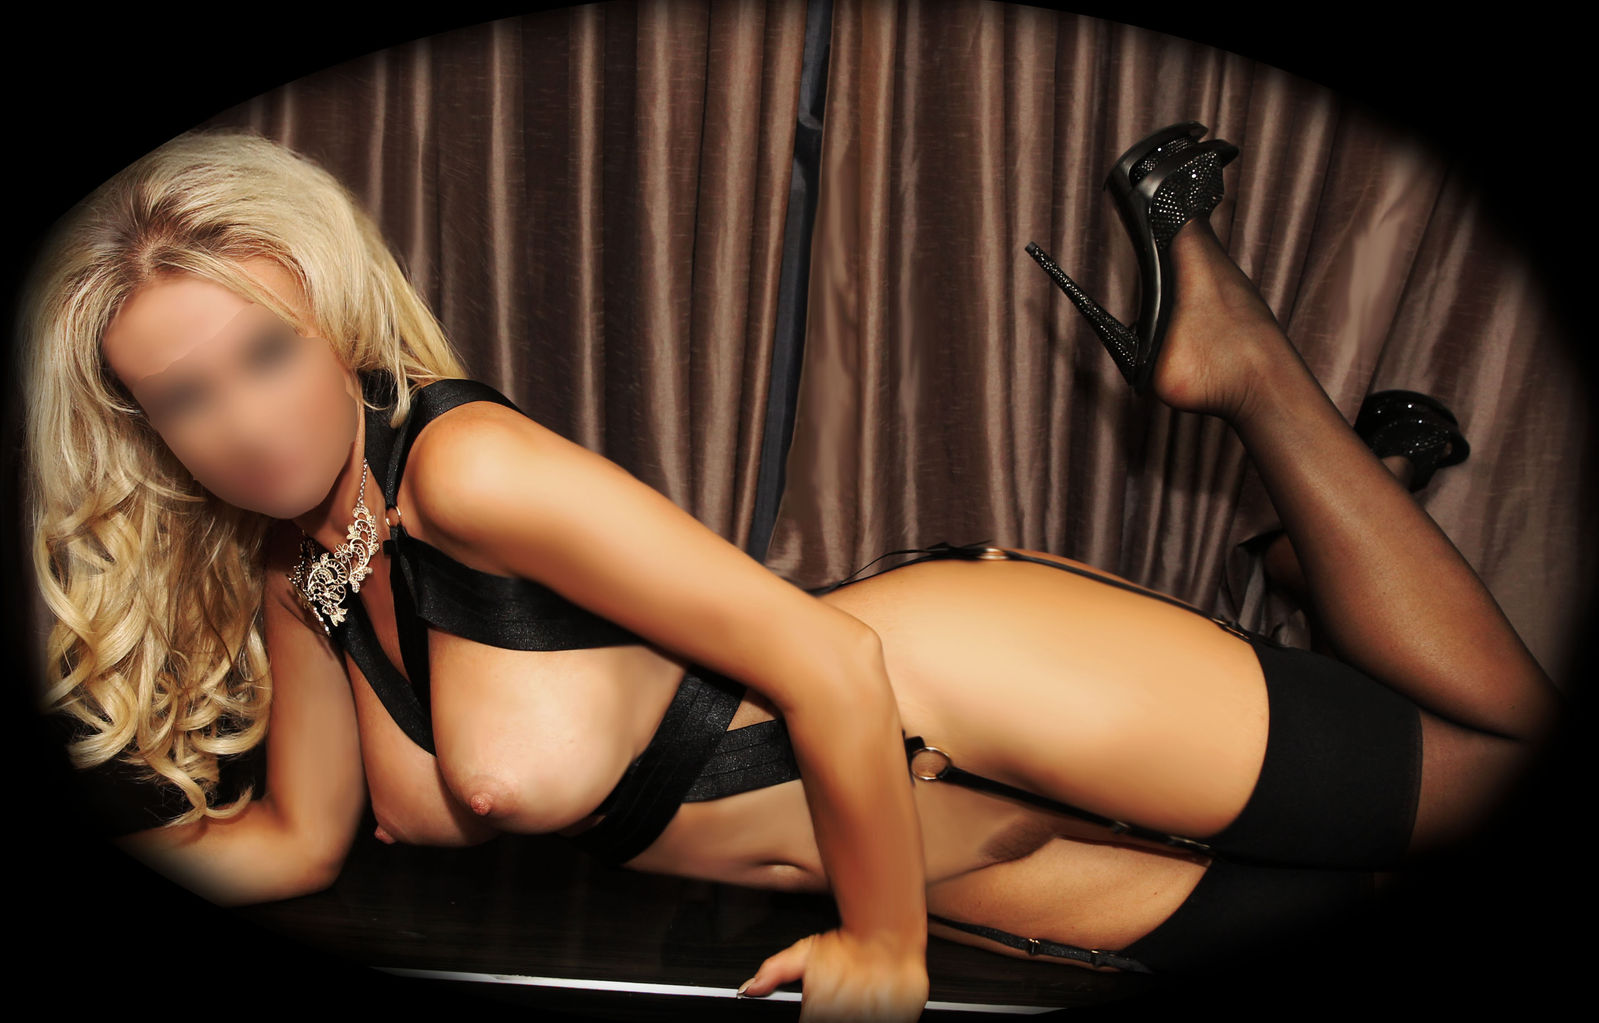 luxury escorts babes and escort Sydney